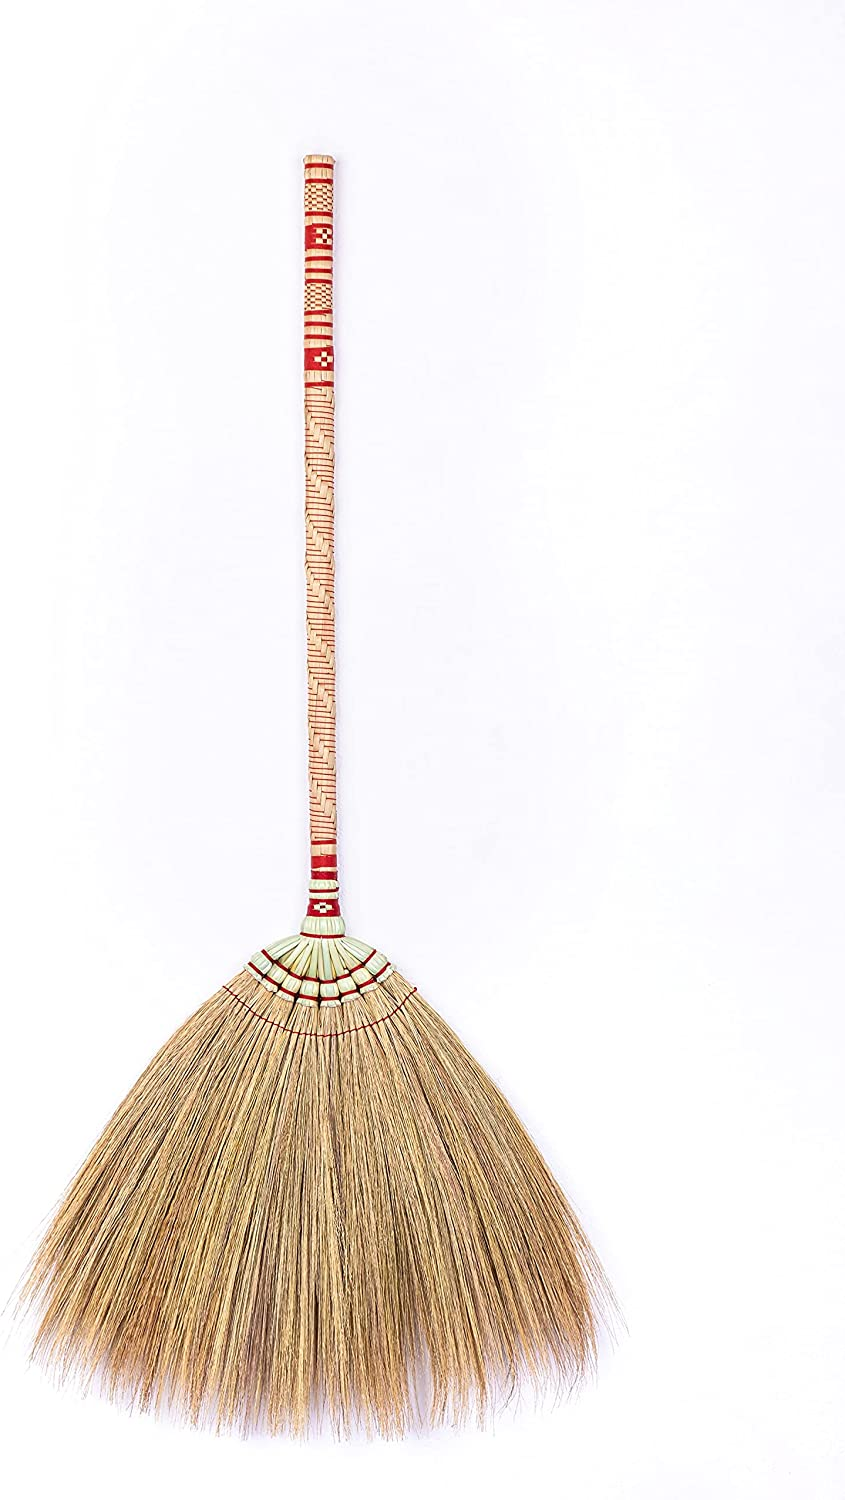 SN SKENNOVA Asian Broom for Household Sacramento Mall Handheld Cleaning Large special price Floor